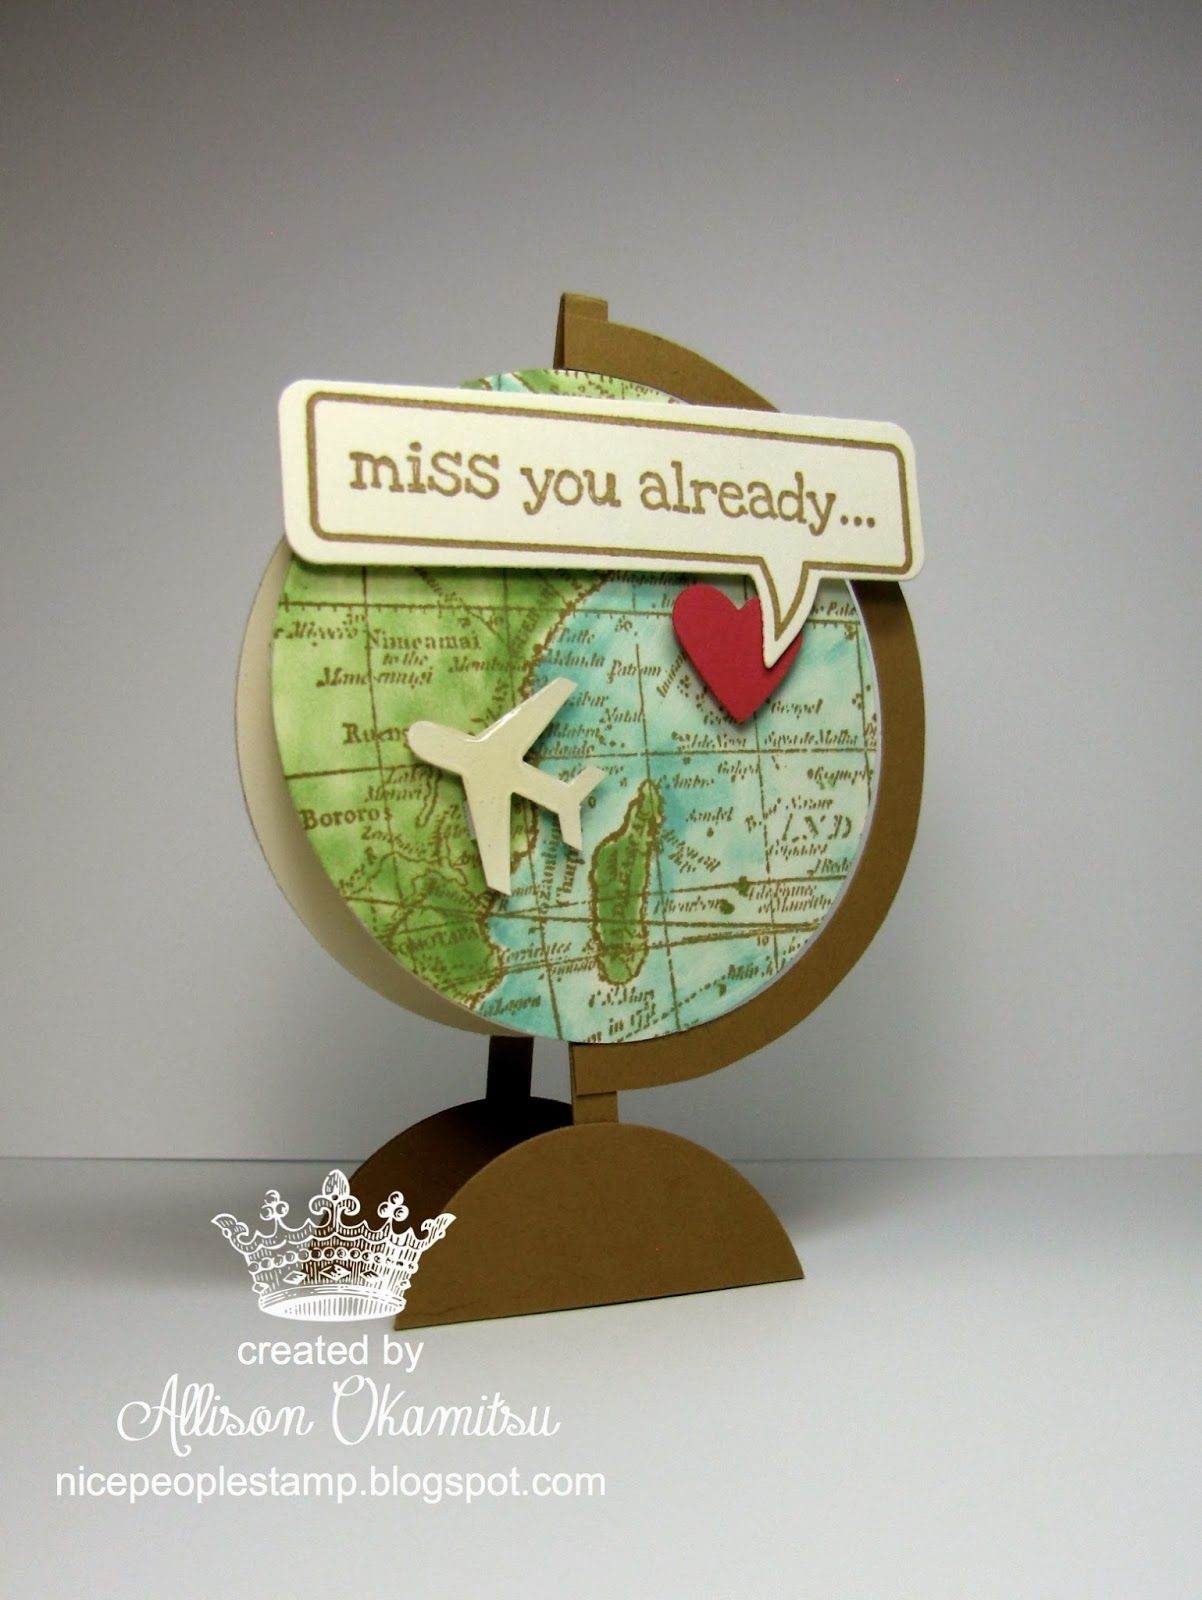 nice people stamp world map miss you globe card cards pinterest karten geschenke und. Black Bedroom Furniture Sets. Home Design Ideas